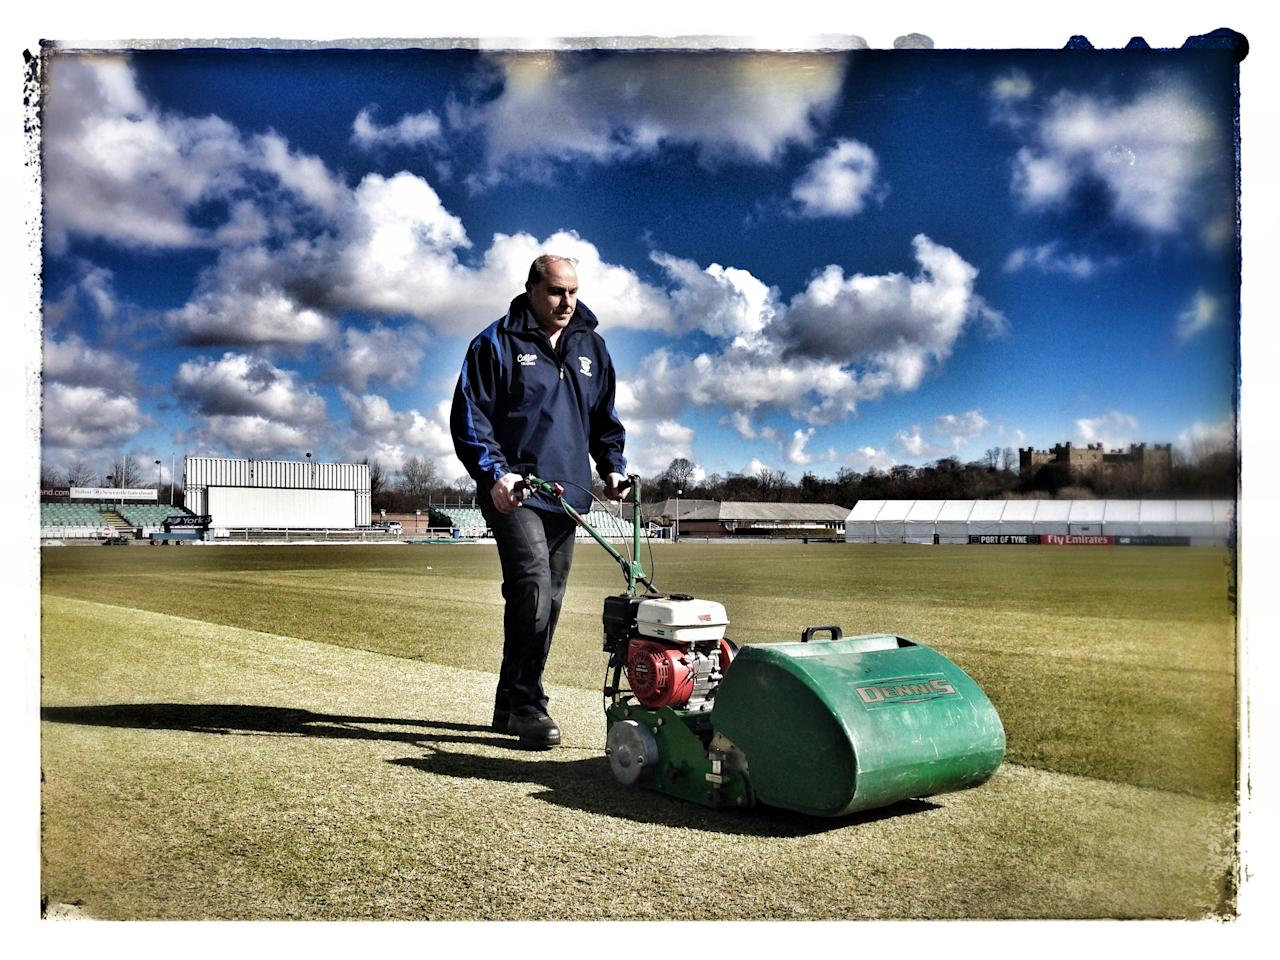 CHESTER-LE-STREET, ENGLAND - APRIL 3: (Editors note: This image was created using an iPhone and saturation filters) Head groundsman Dave Measor of Durham CCC mows the grass during a pre-season photocall at The Riverside on April 3, 2013 in Chester-le-Street, England. (Photo by Paul Thomas/Getty Images)